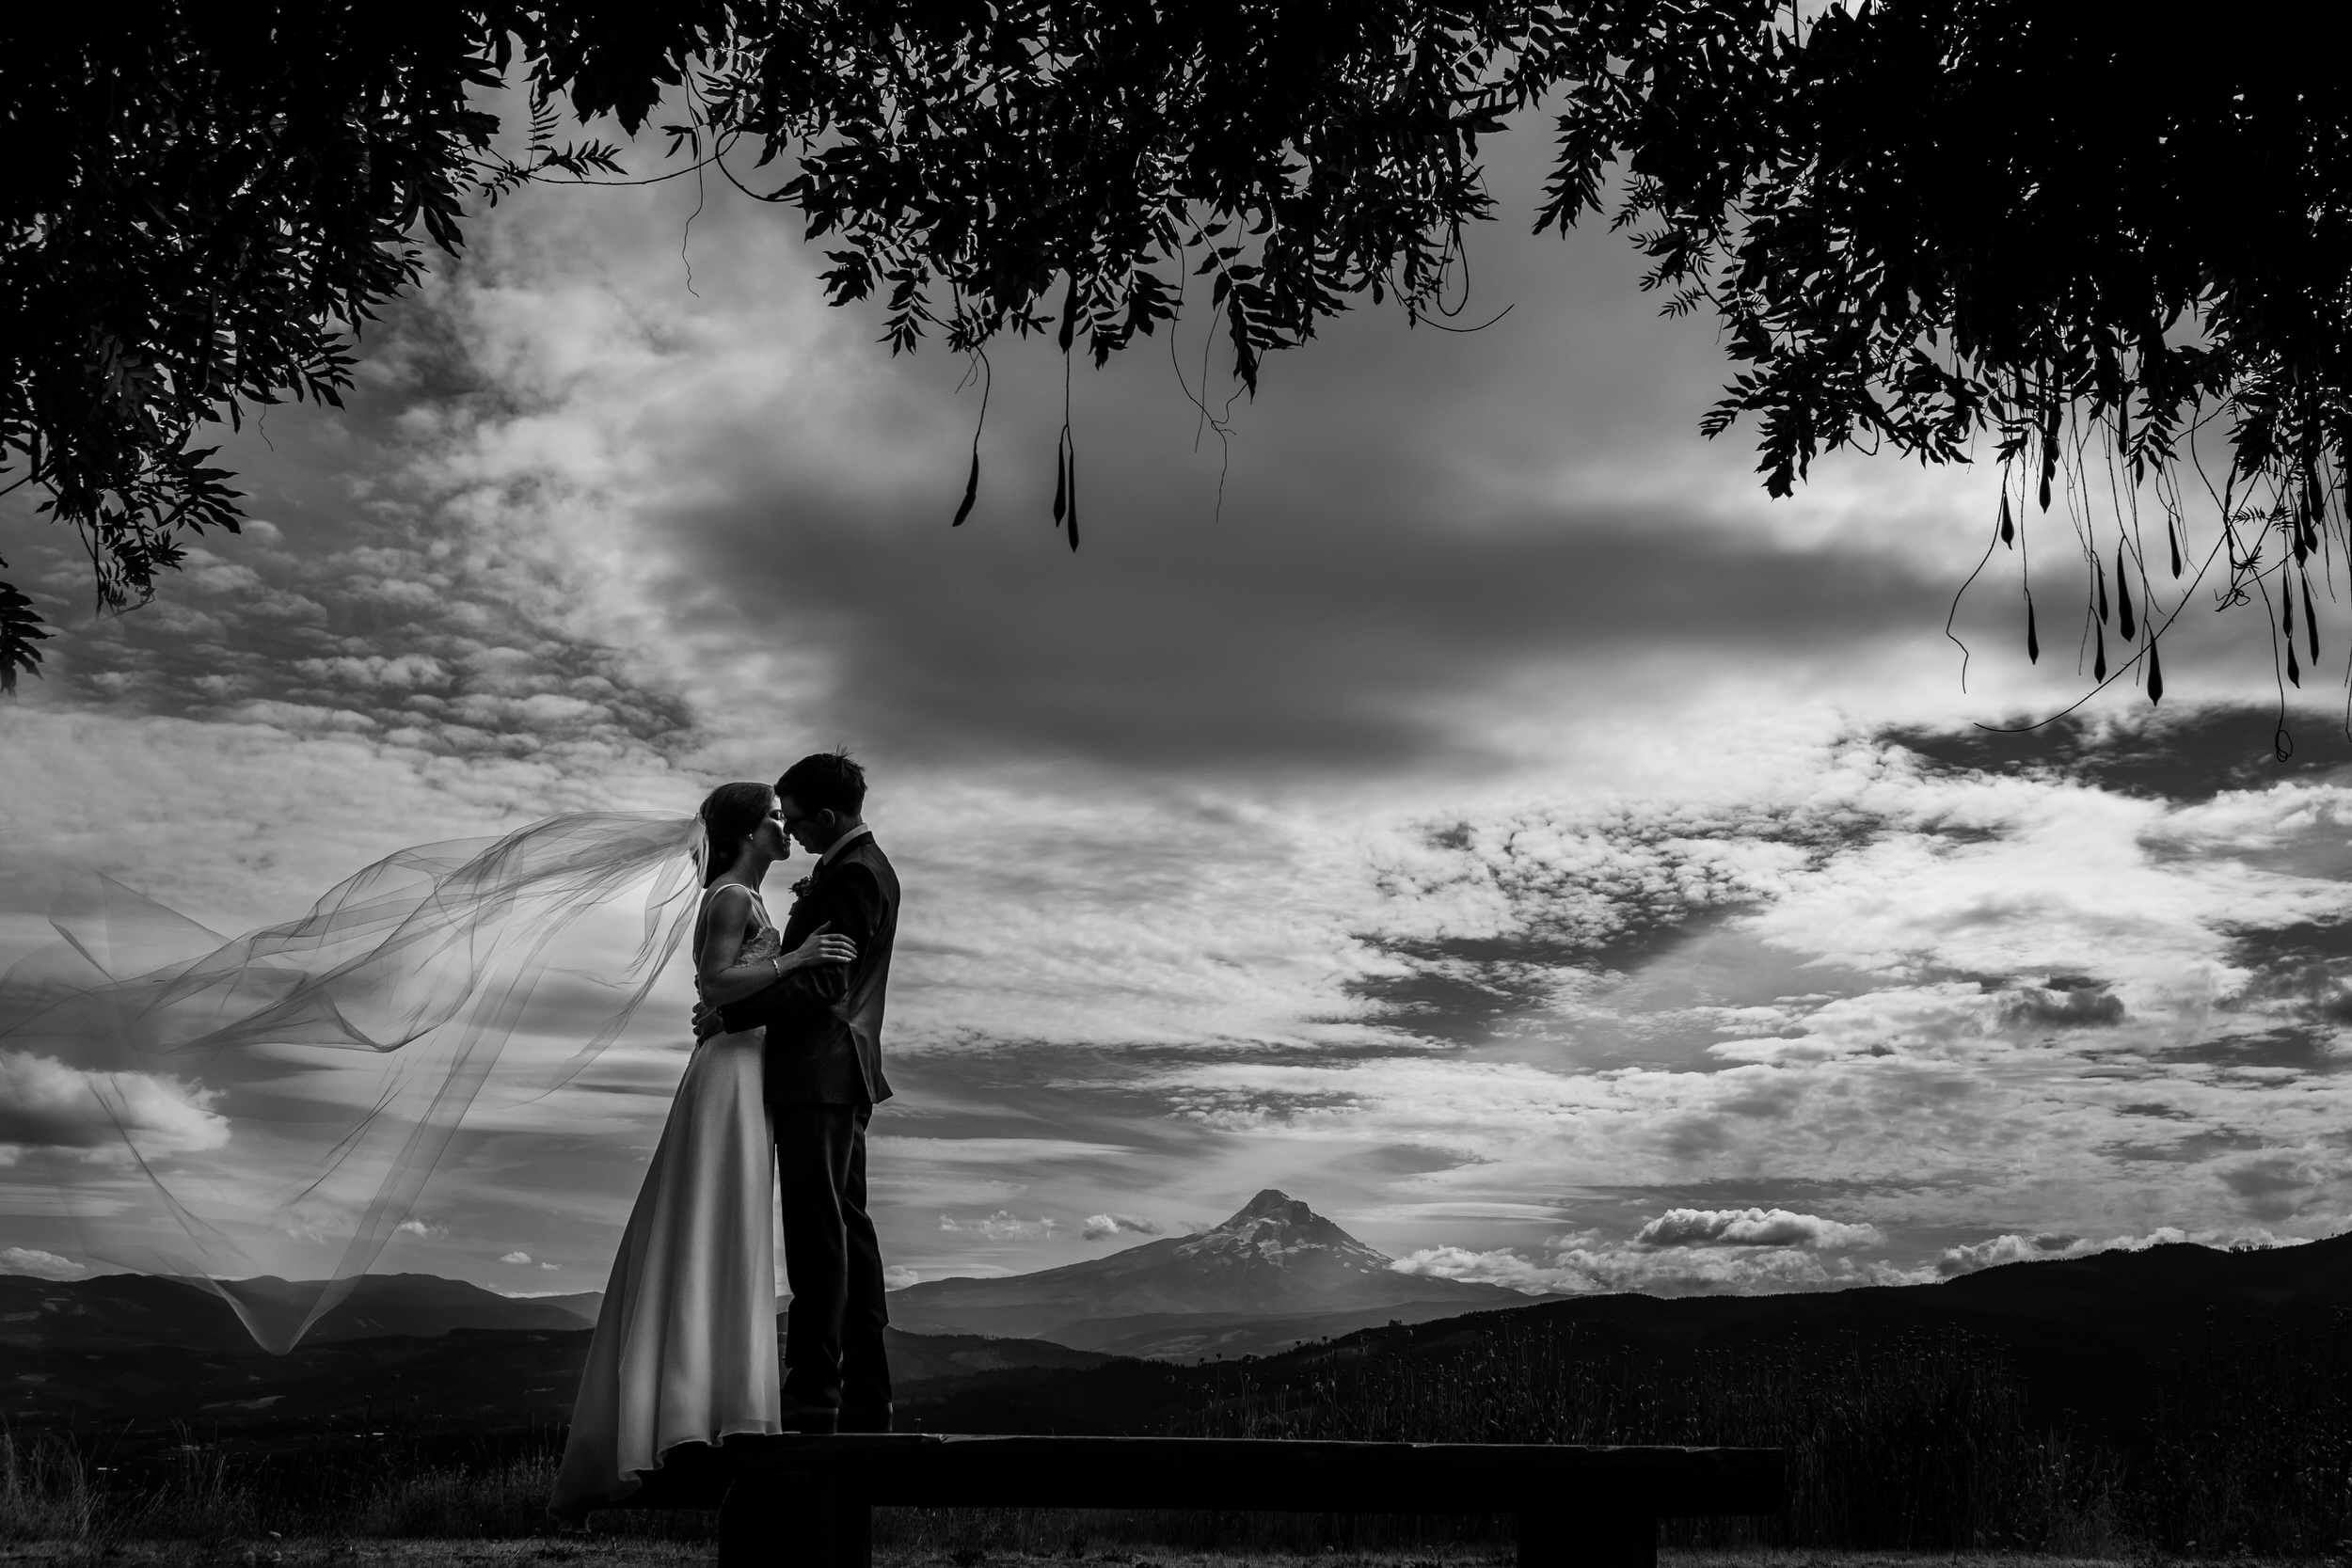 Gorge_Crest_Vineyards_Wedding_Stark_Photography_001